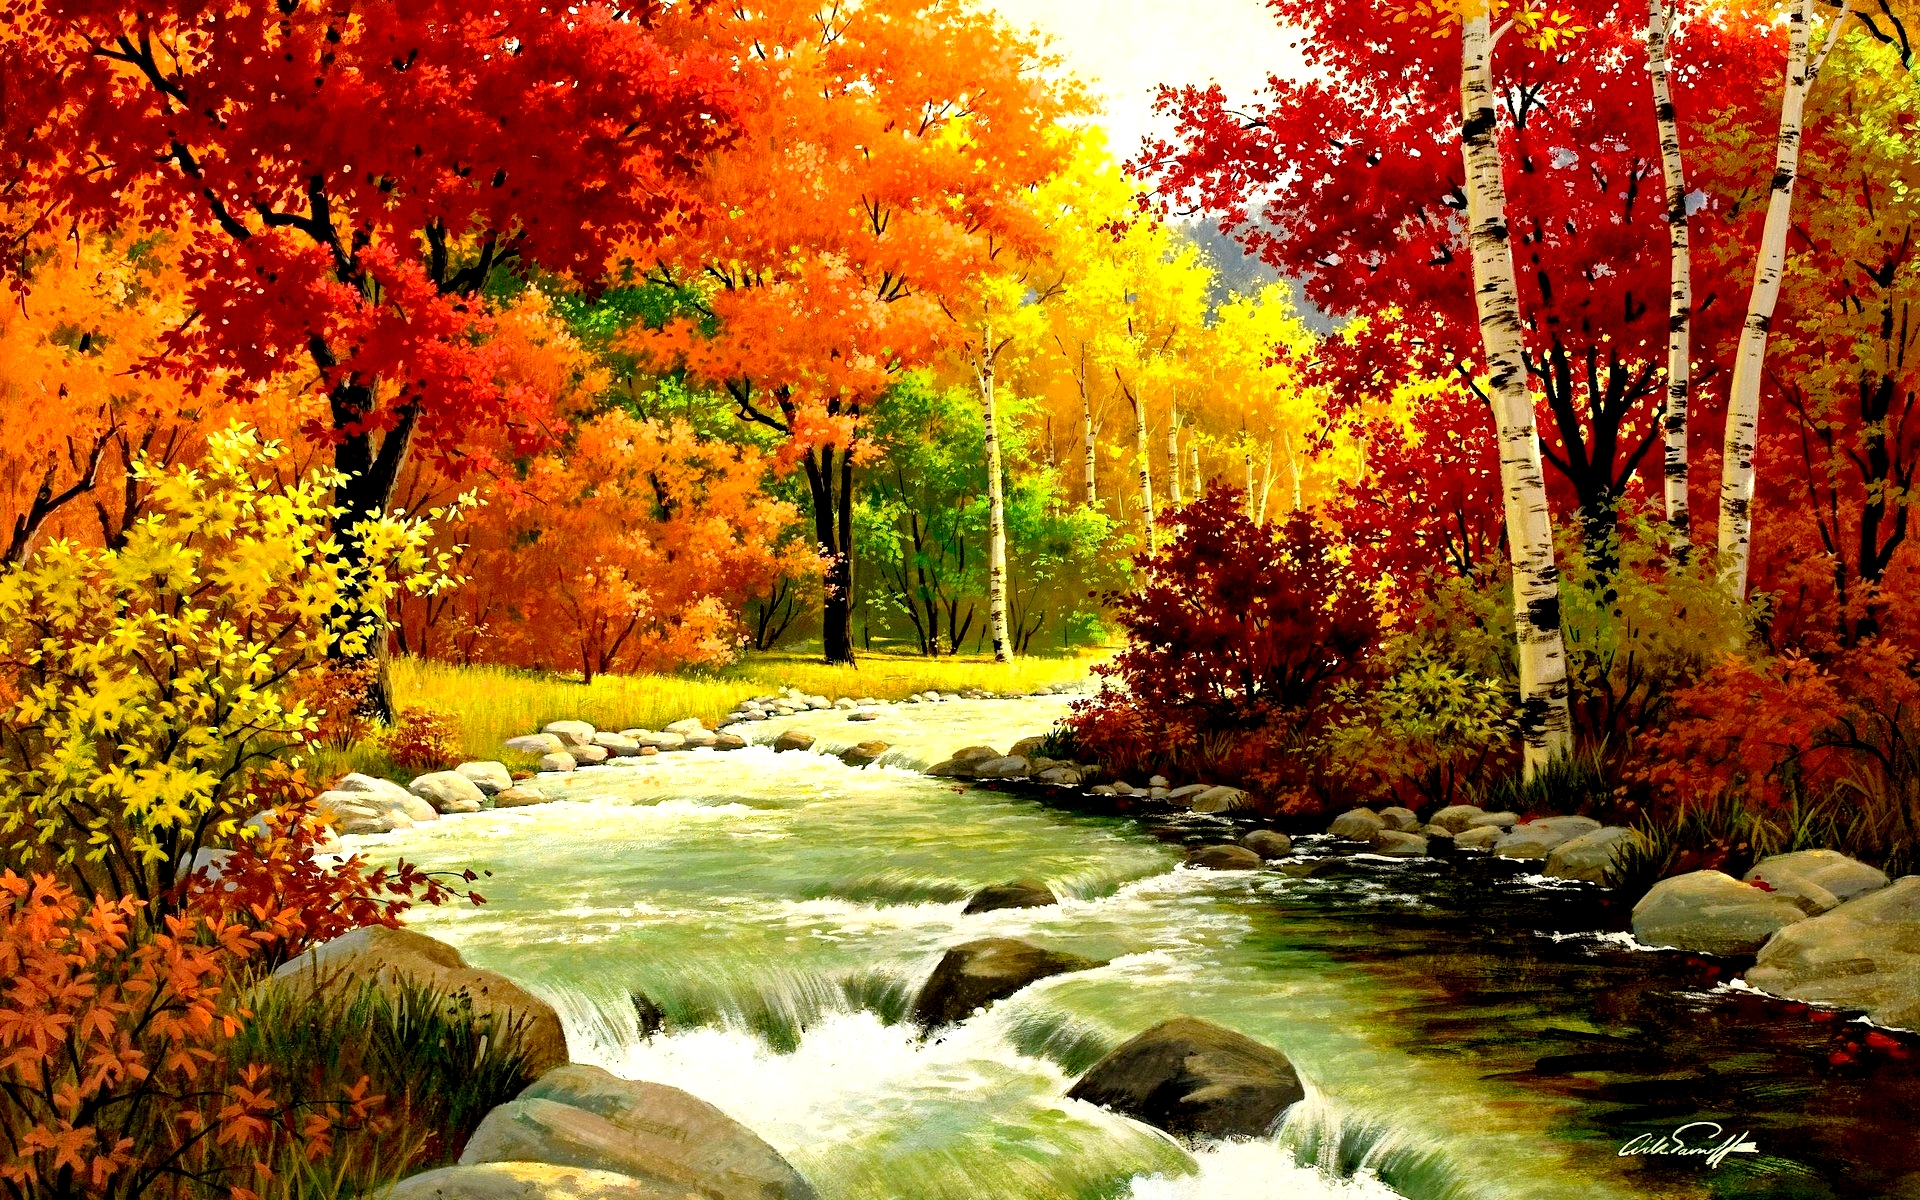 Autumn Fall Wallpapers River 2621 Wallpaper Cool Walldiskpapercom 1920x1200